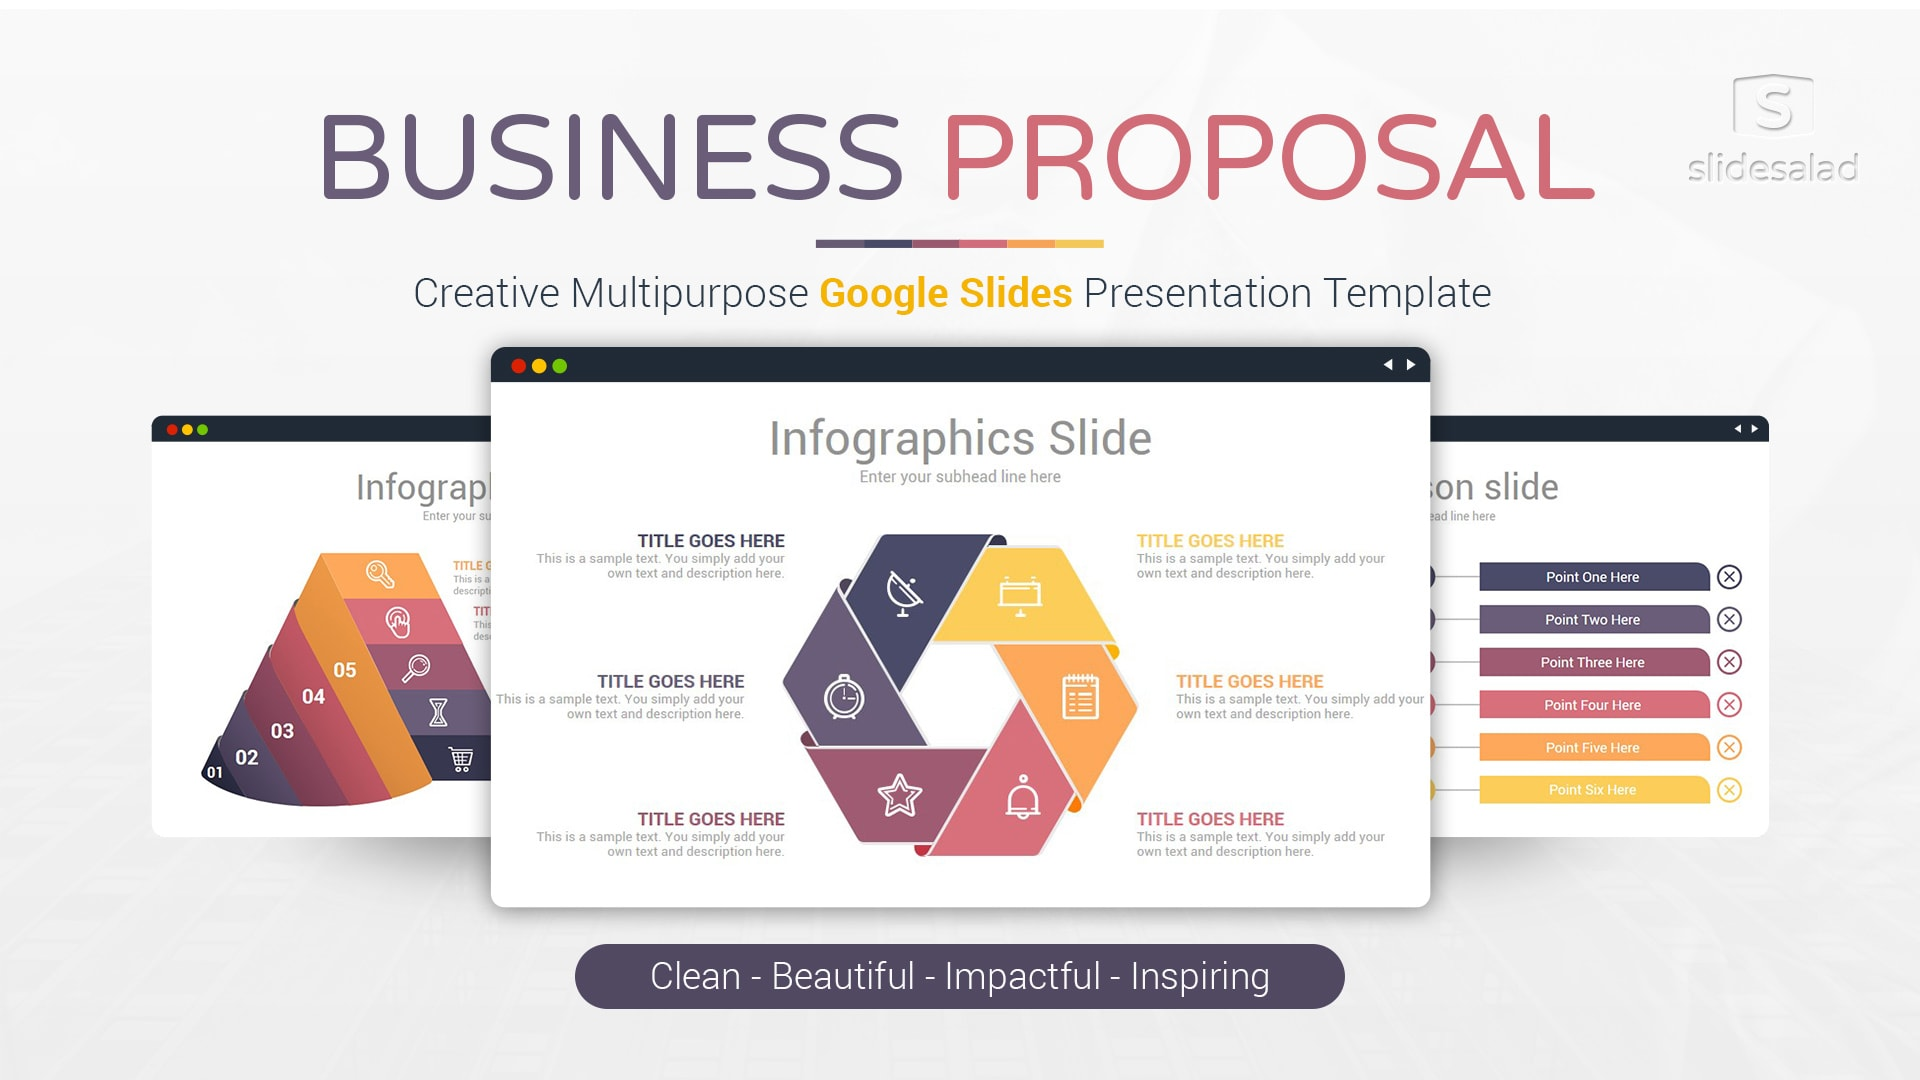 Business Proposal Google Slides Presentation Template – An All in One Business Proposal Theme for Google Slides